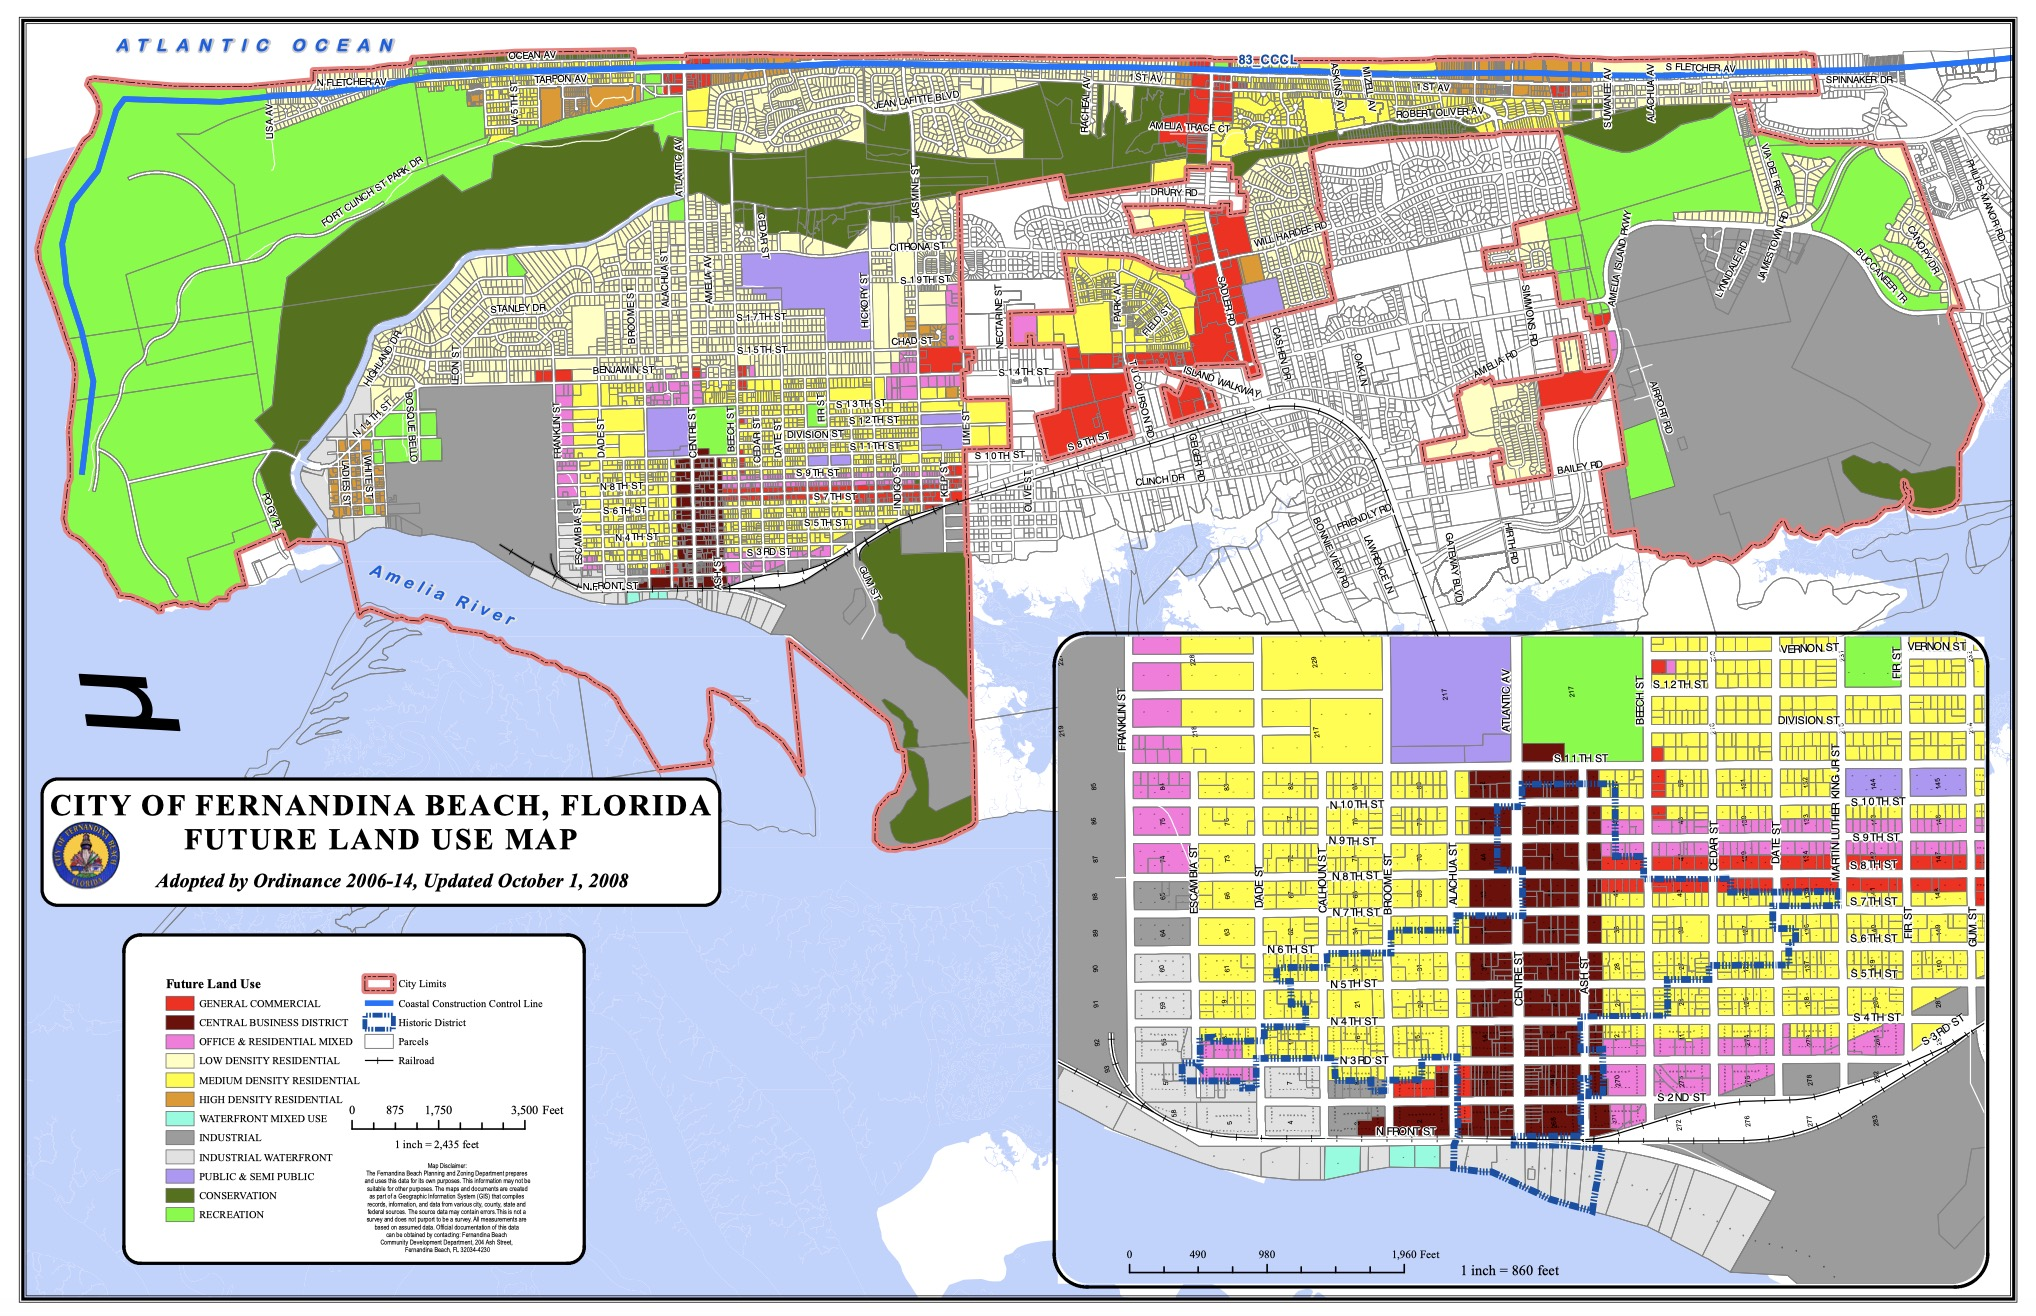 Fernandina's Future Land Use Map and Clarity